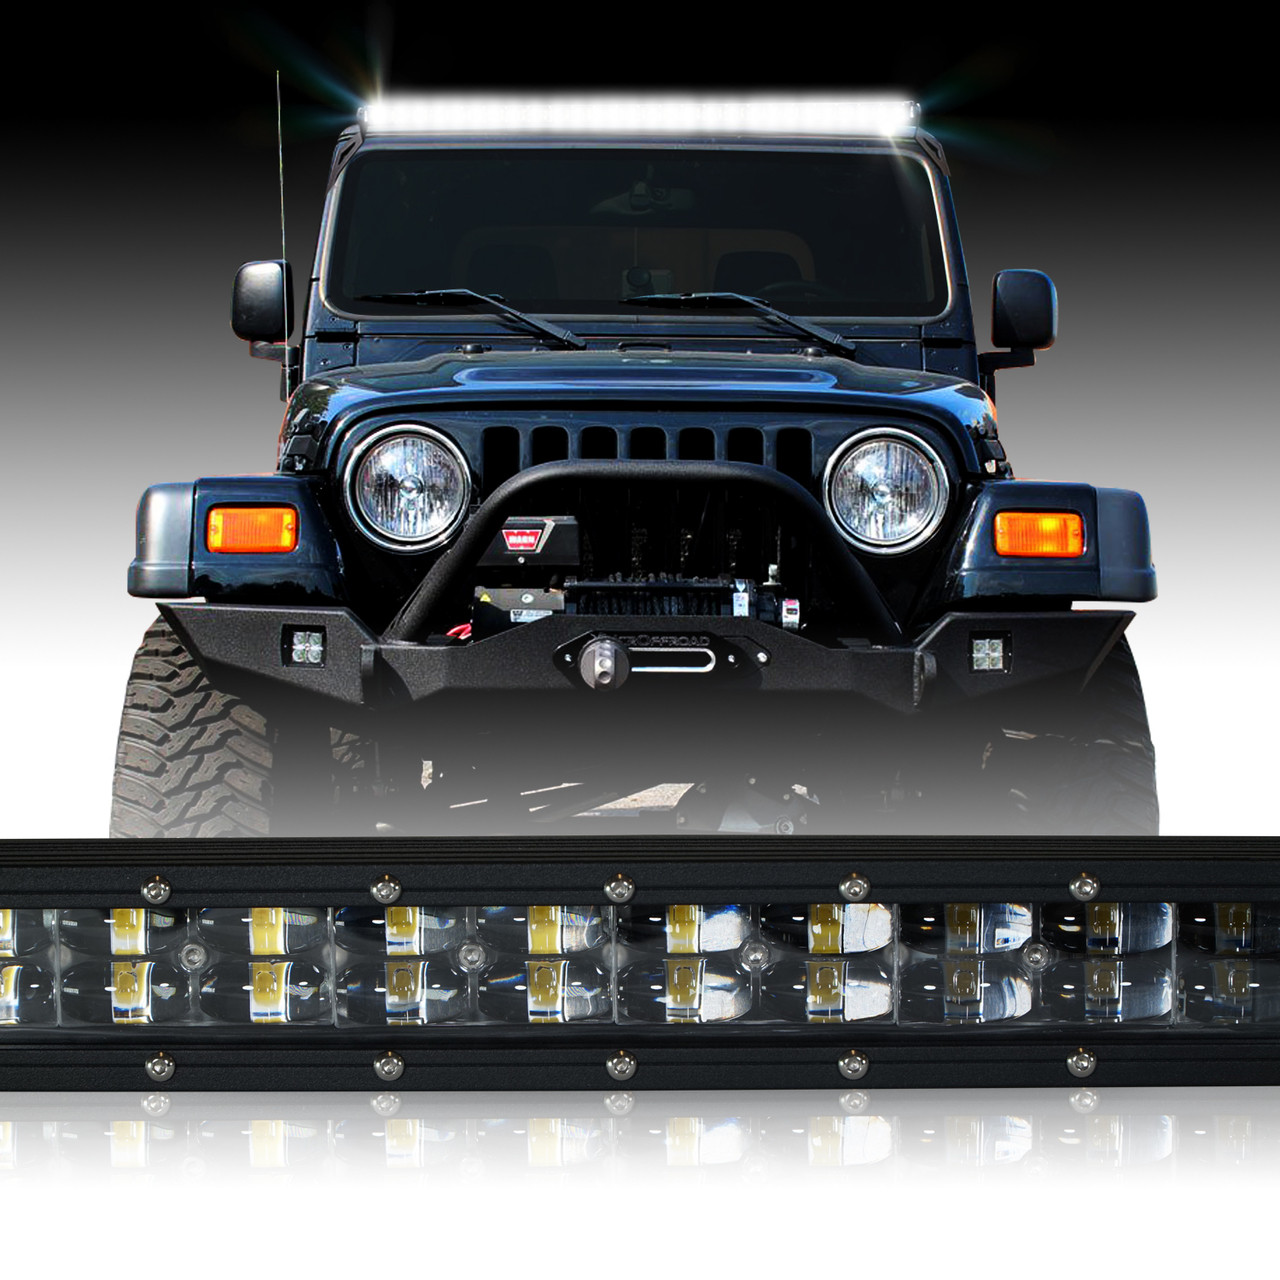 Led Light Bar 288w 50 Inches Bracket Wiring Harness Kit For Wrangler 2000 Jeep  Wrangler Interior 2006 Jeep Wrangler Wiring Harness